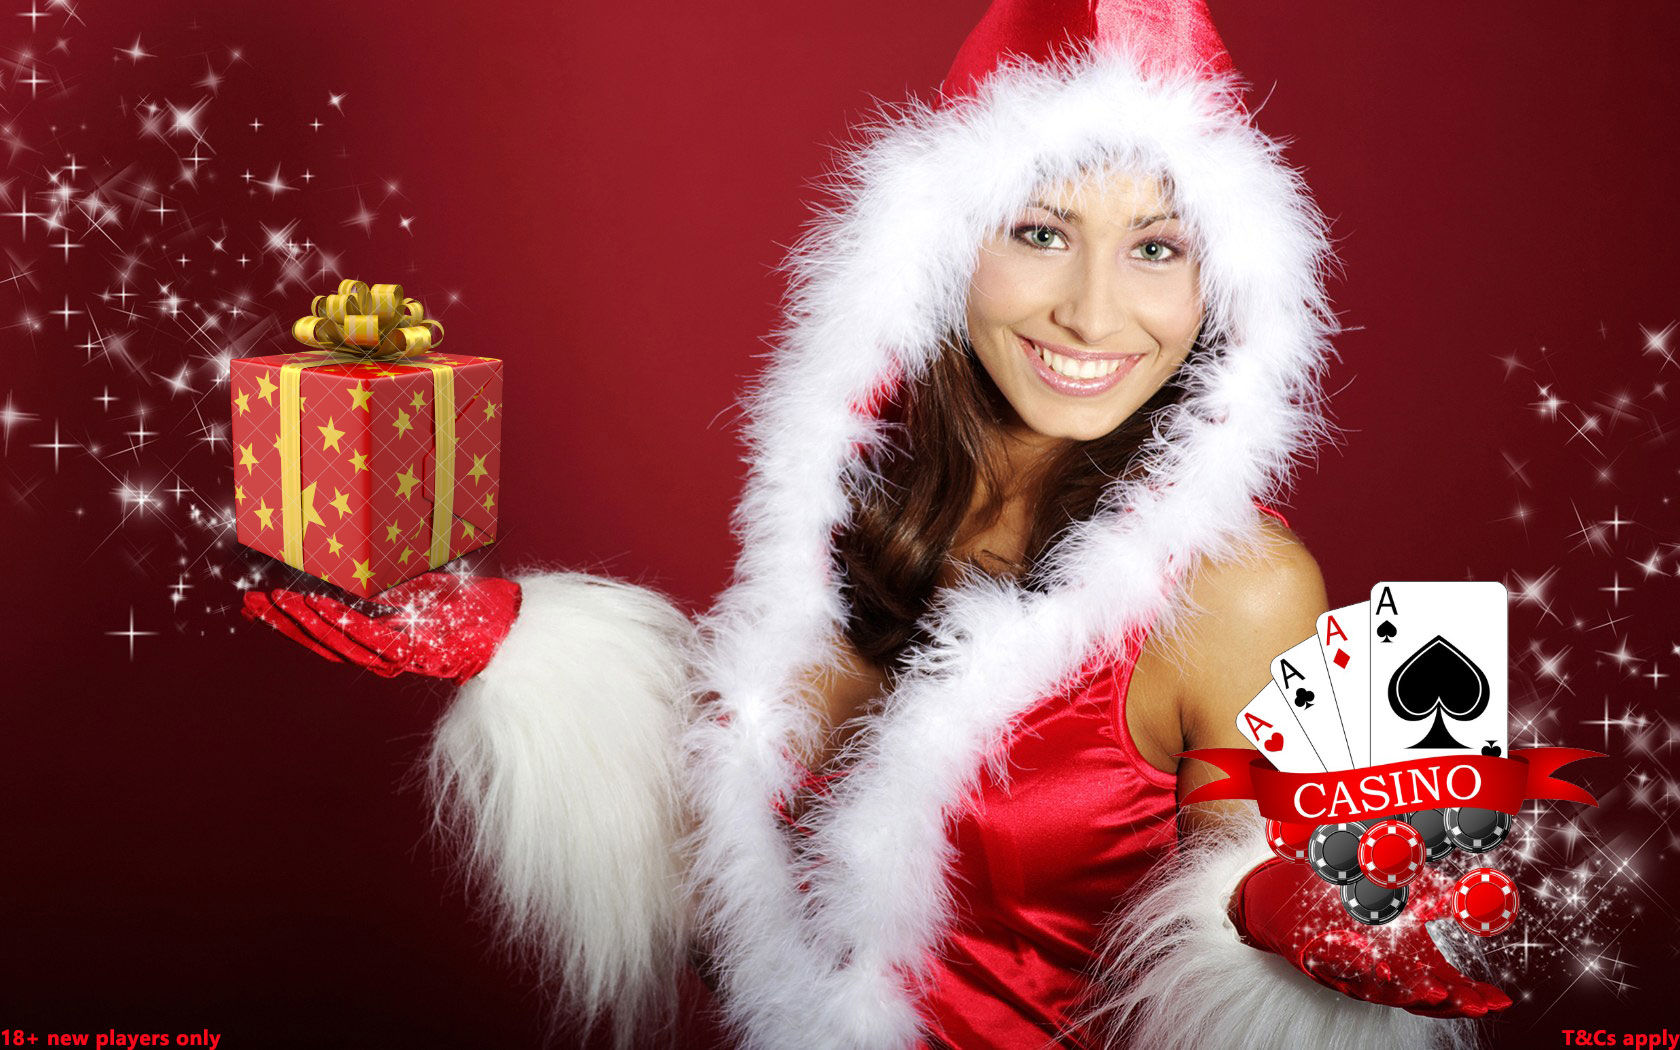 The Value of Online Casino in Christmas